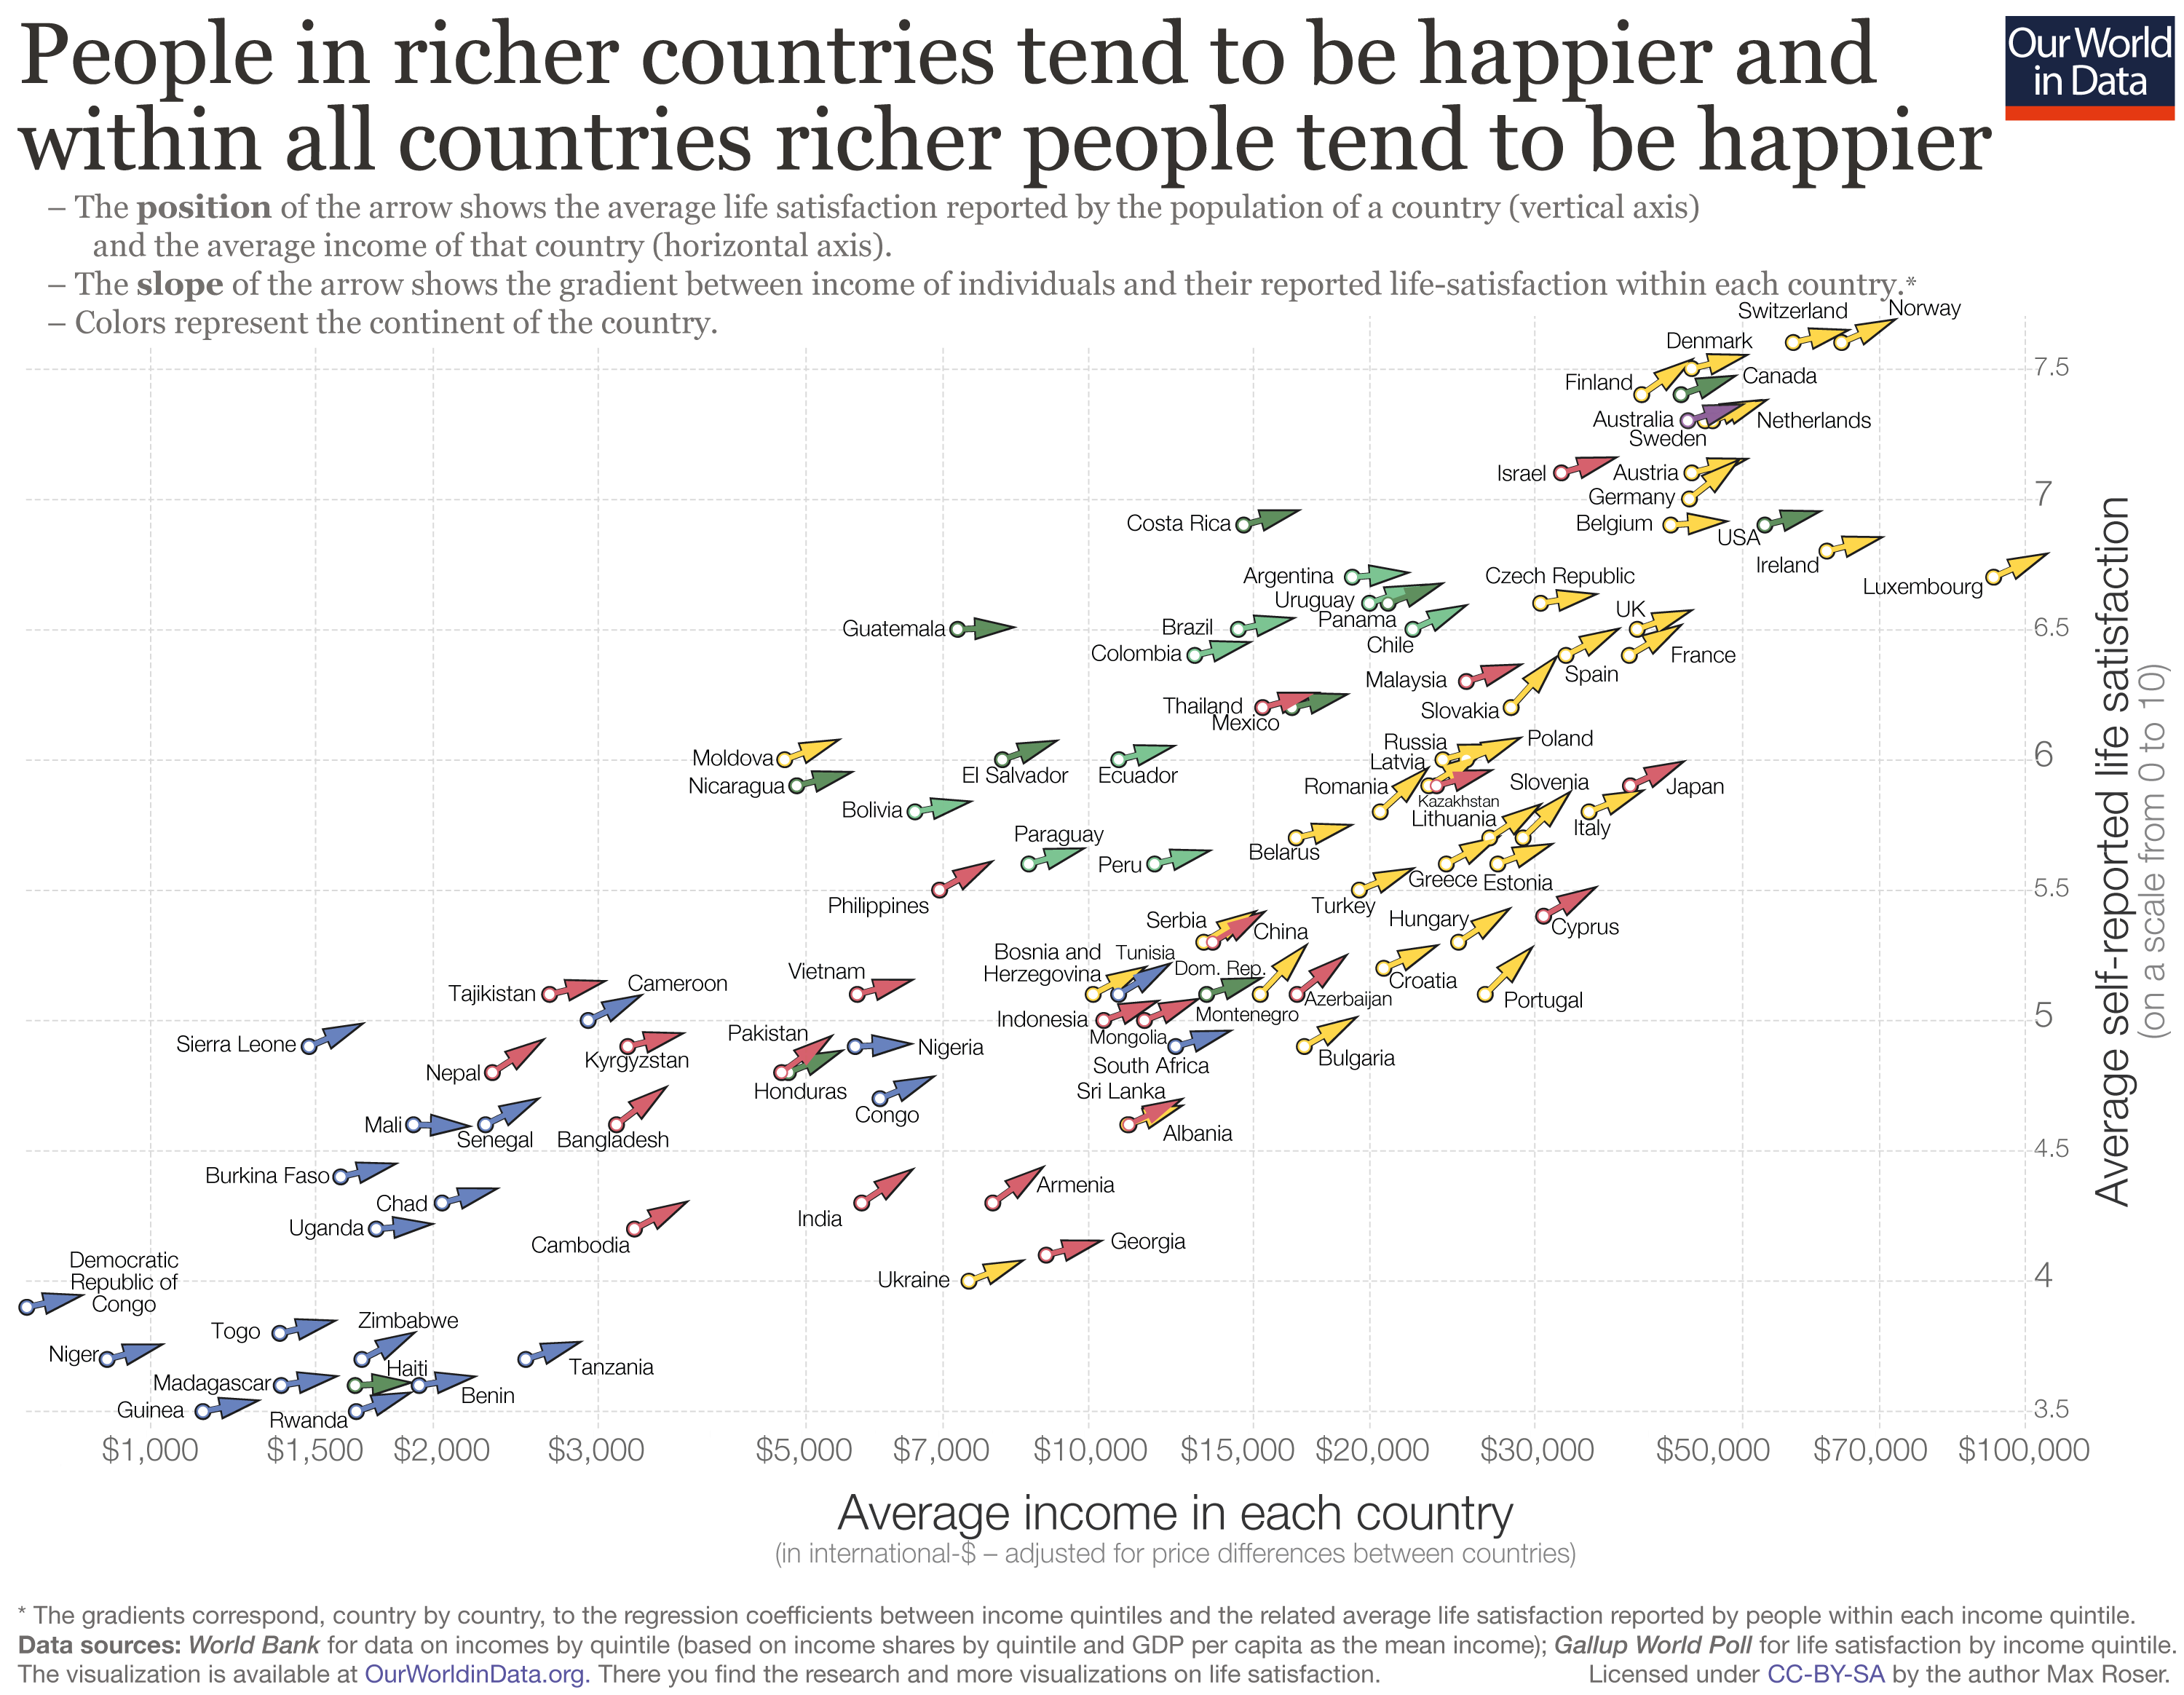 People in richer countries tend to be happier and within all countries richer people tend to be happier